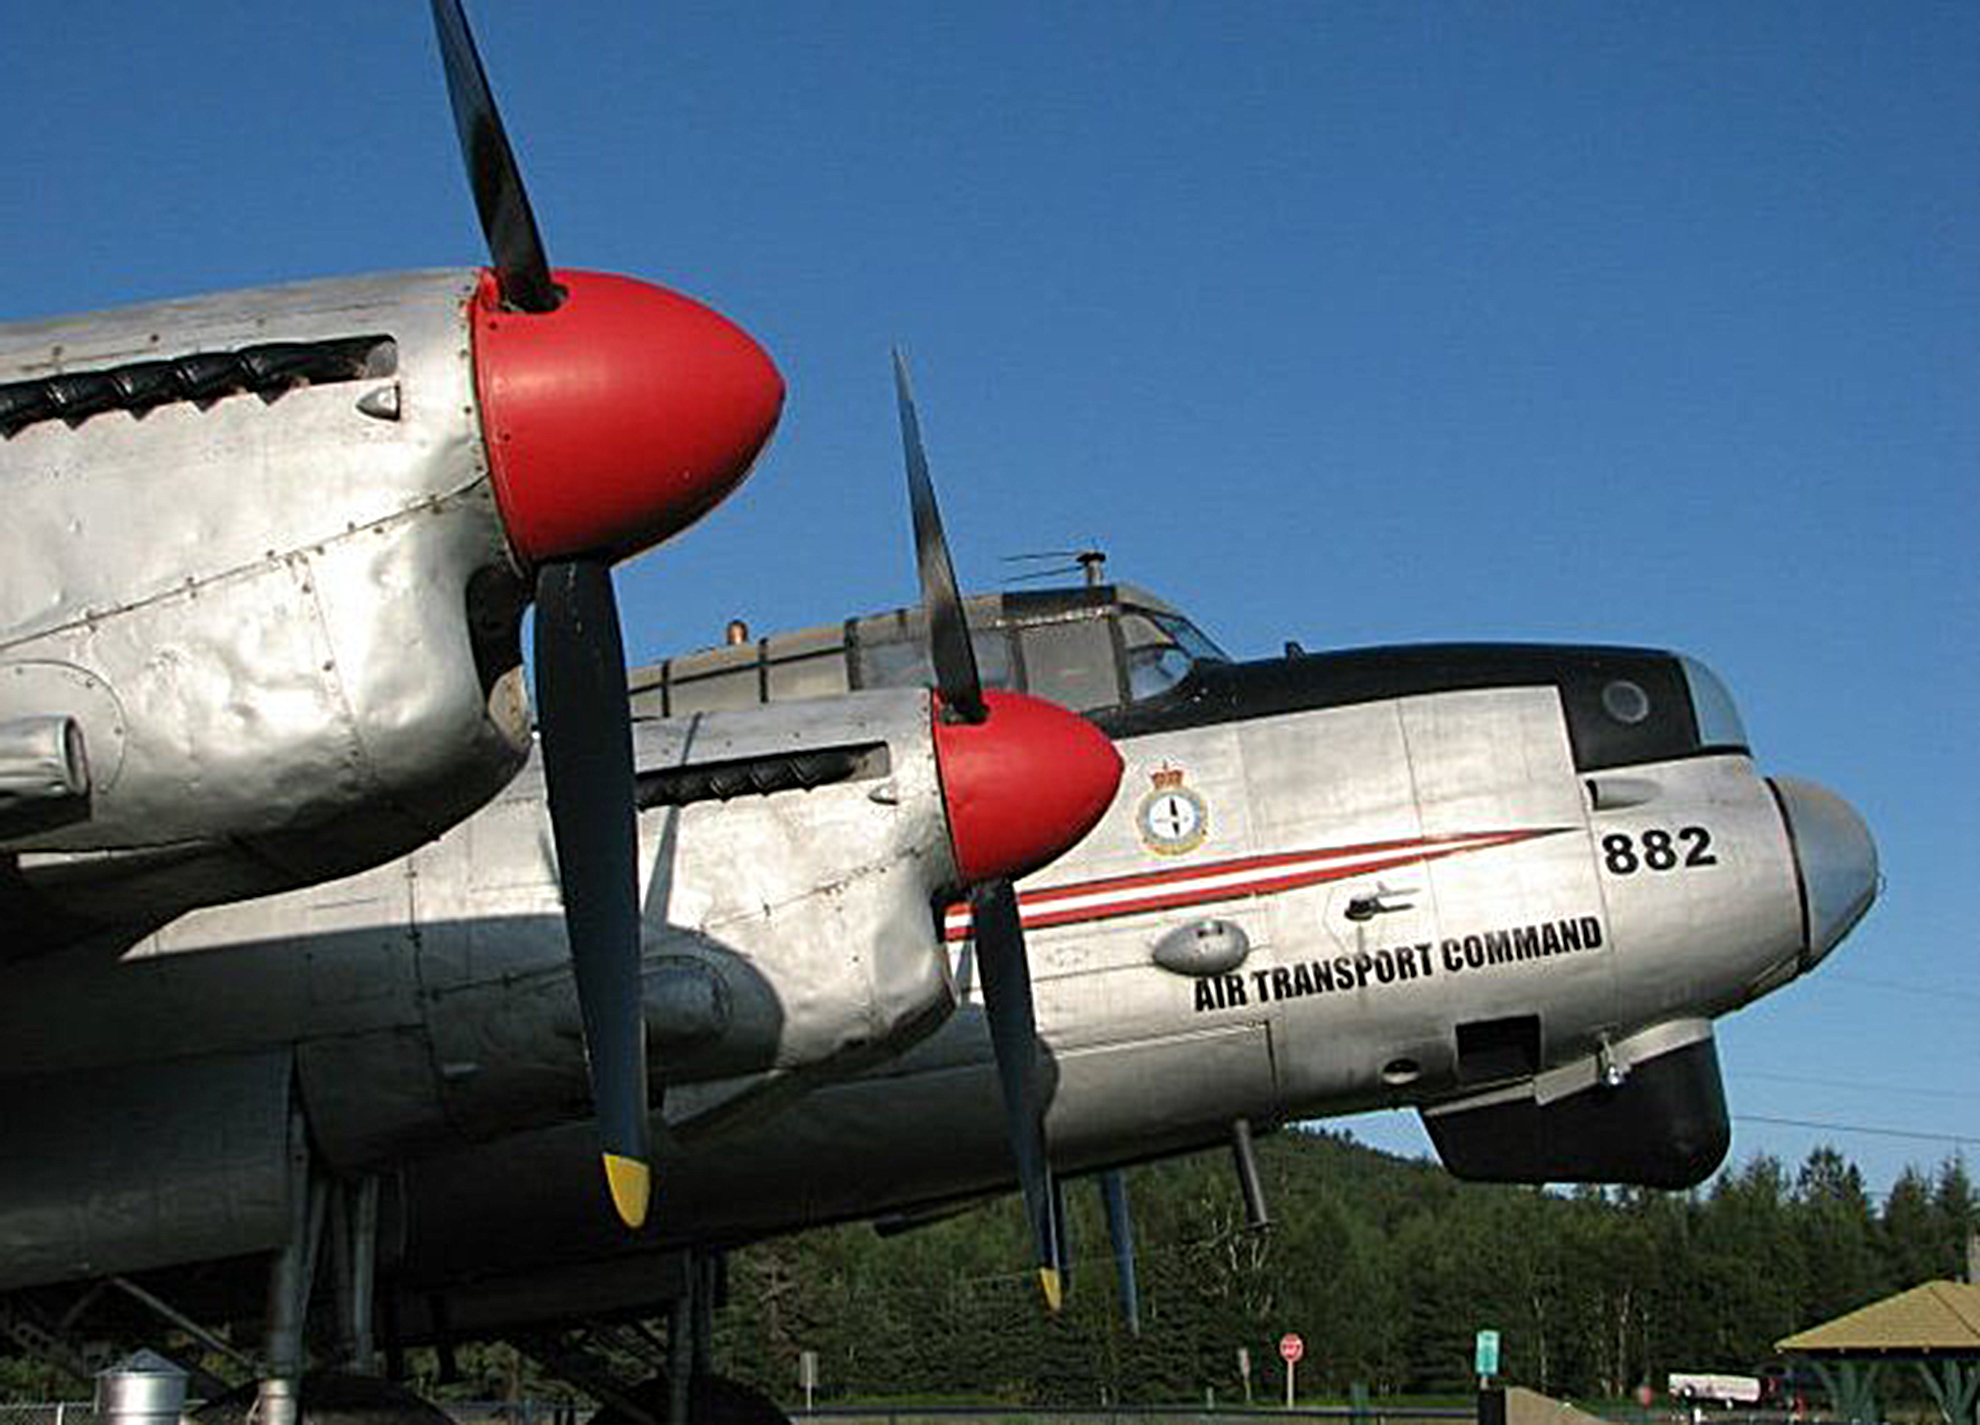 A closeup of Lancaster KB882 on display in Edmundston, New Brunswick, in 2015. Note the Air Transport Command markings and the flying goose badge of 408 Squadron. When the Lanc arrived in Edmundston on July 14, 1964, the squadron was dubbed 408 Tactical Support and Area Reconnaissance Squadron. The squadron is now 408 Tactical Helicopter Squadron and is located in Edmonton, Alberta. PHOTO: Courtesy Alberta Aviation Museum